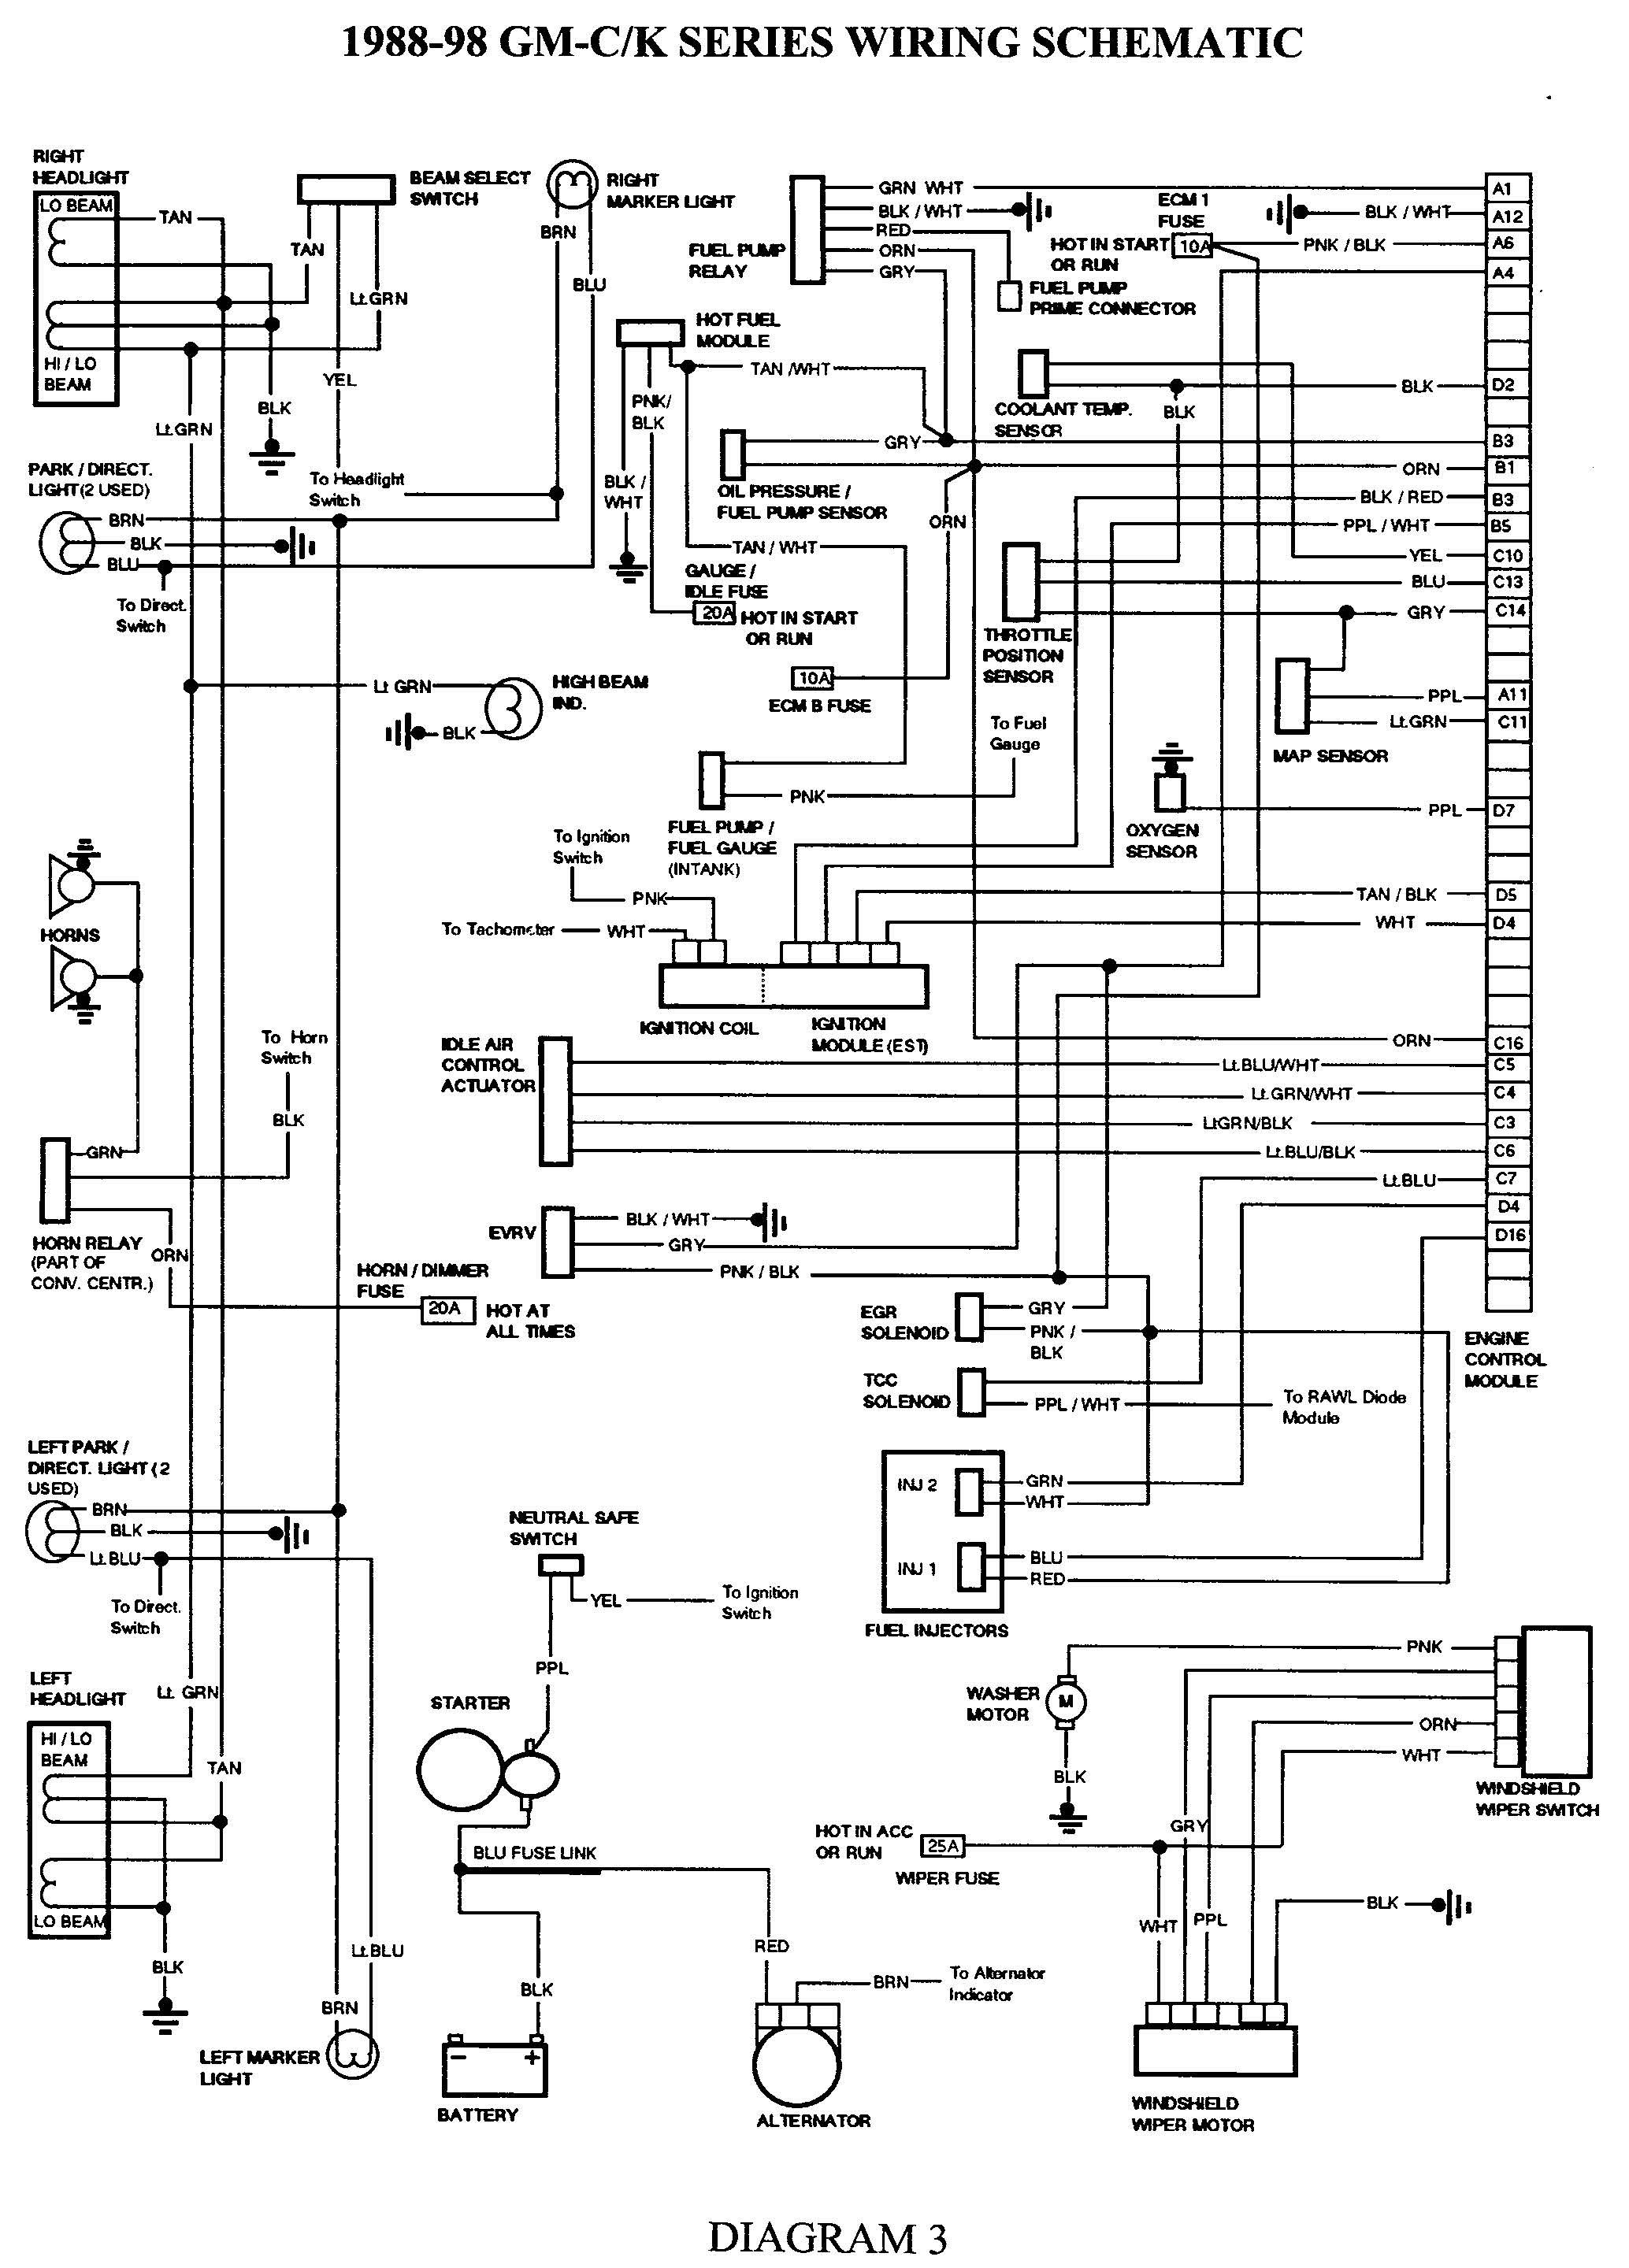 86 oldsmobile cutlass engine diagram wiring library86 cutlass wiring diagram 21 [ 2068 x 2880 Pixel ]